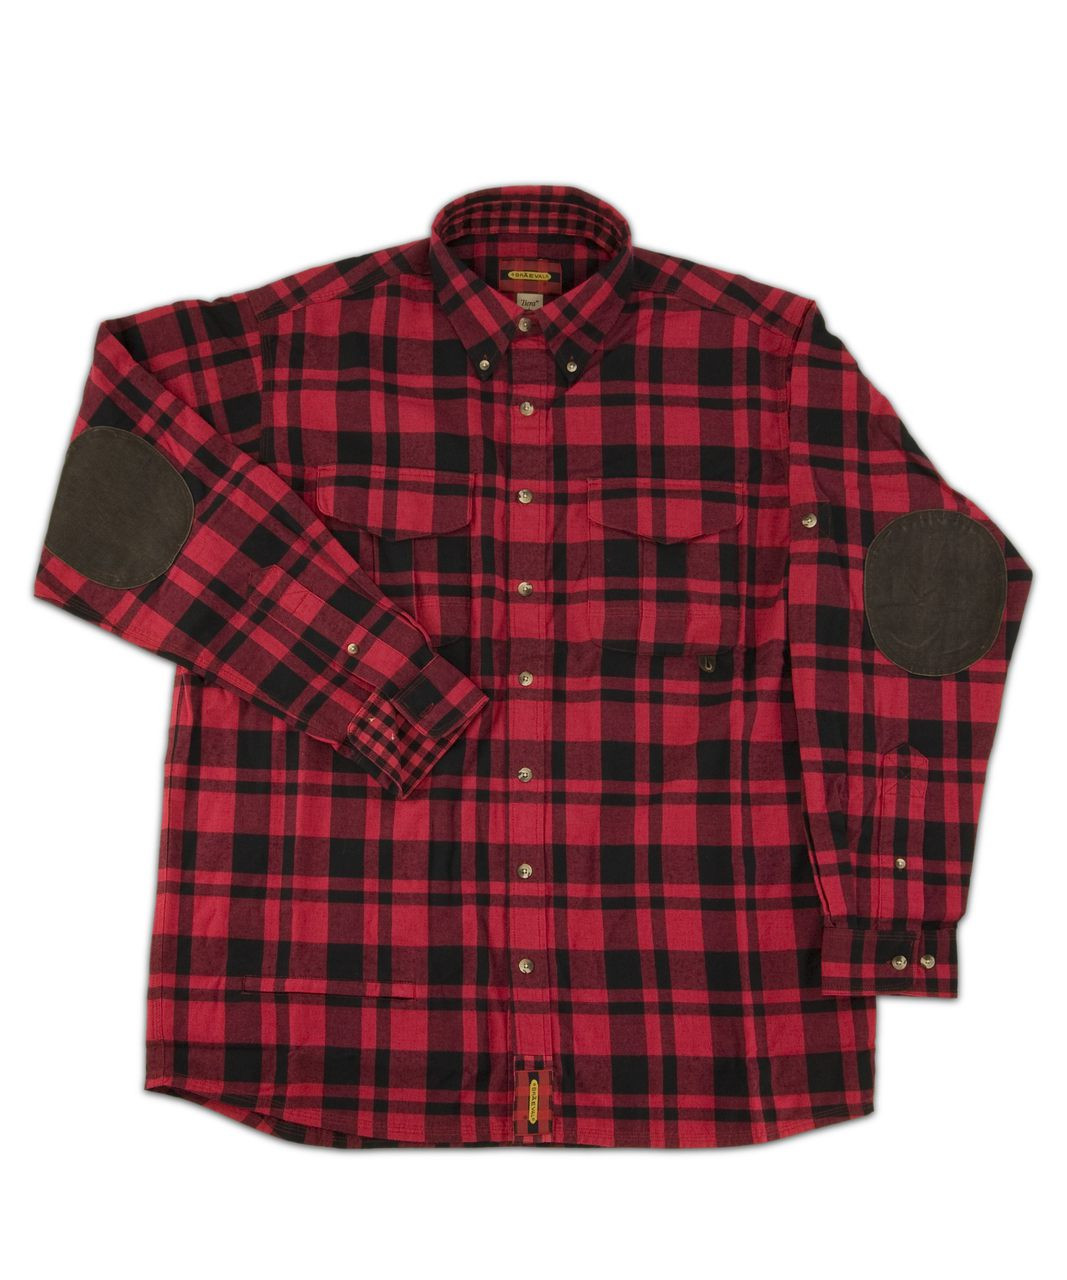 Paddock - Rob Roy Highlander Plaid - 25% OFF